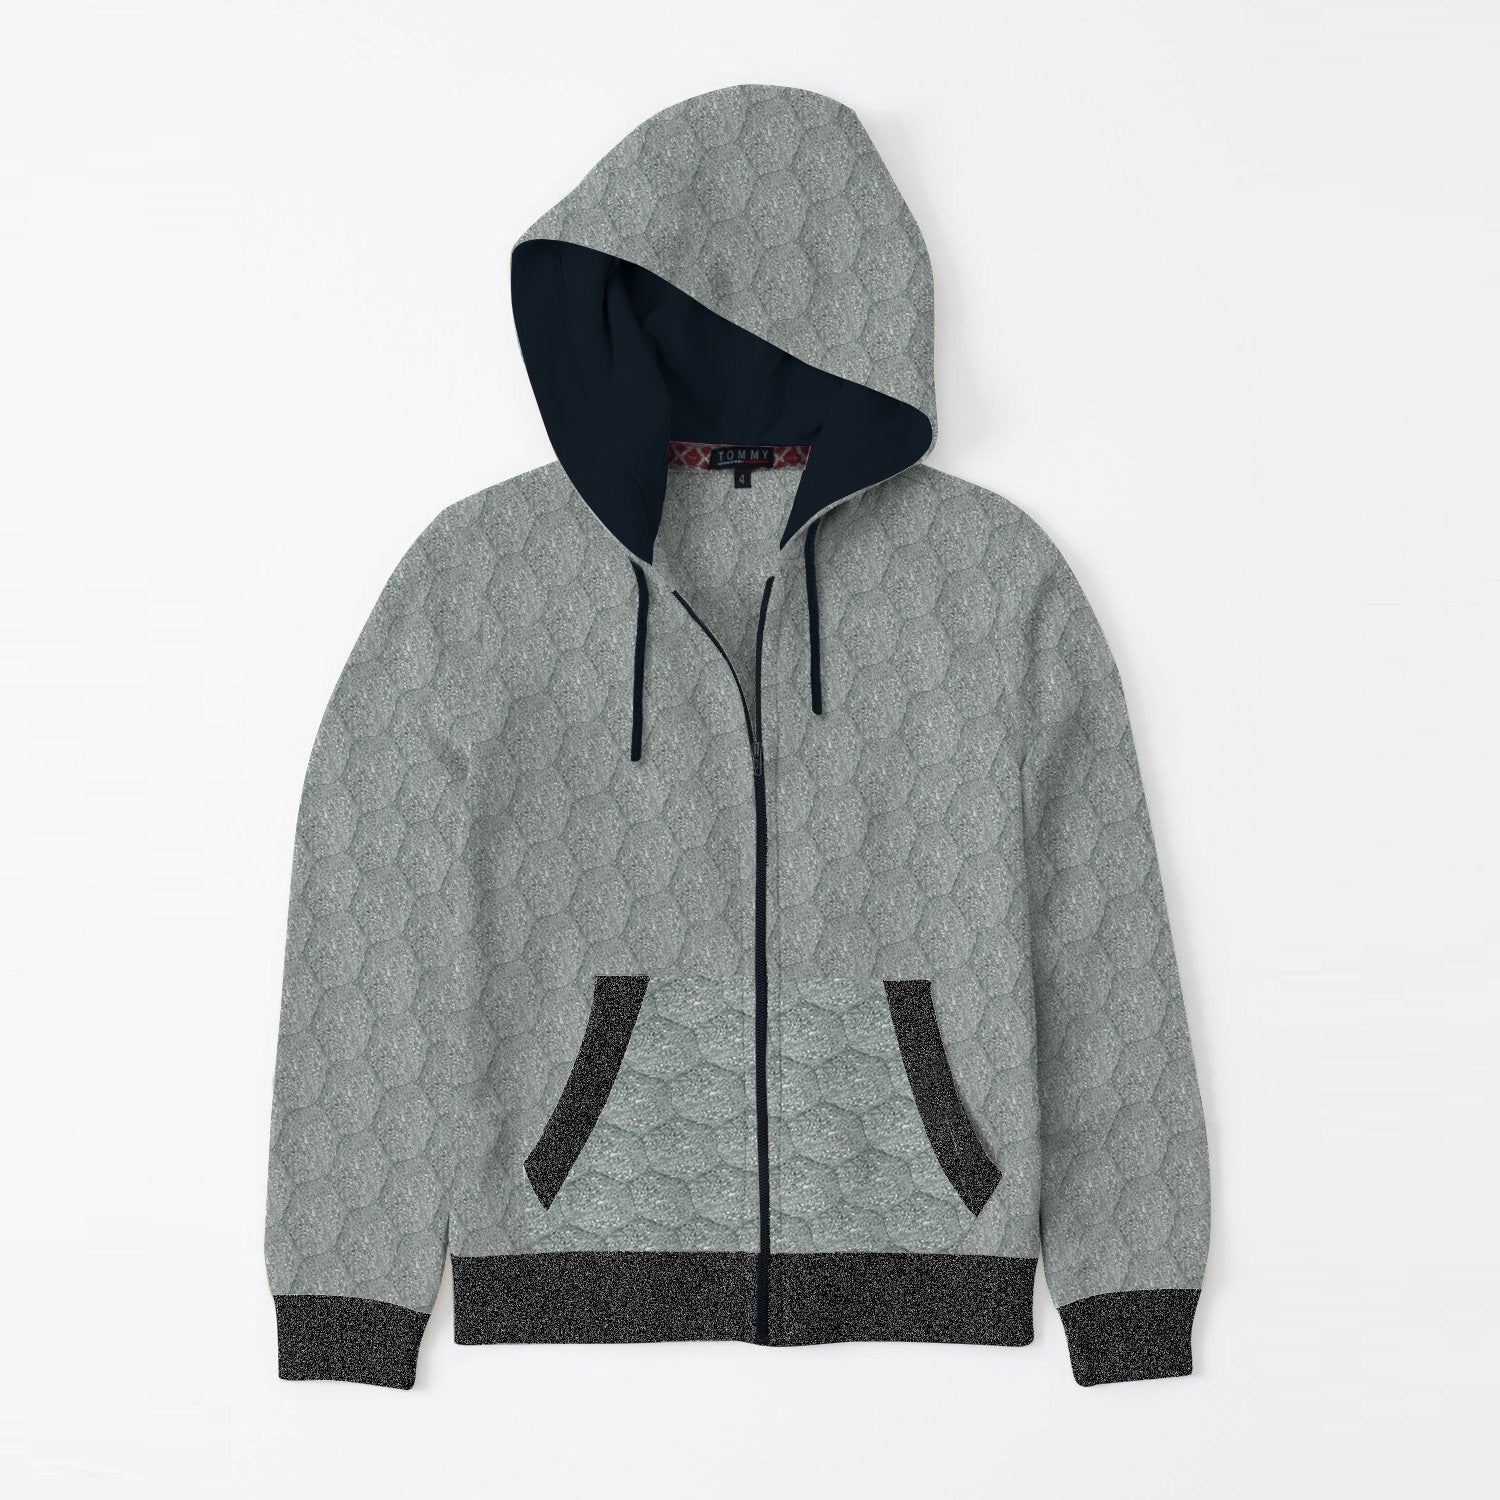 TH Quilted Zipper Hoodie For Kids-Grey Melange-SP3383